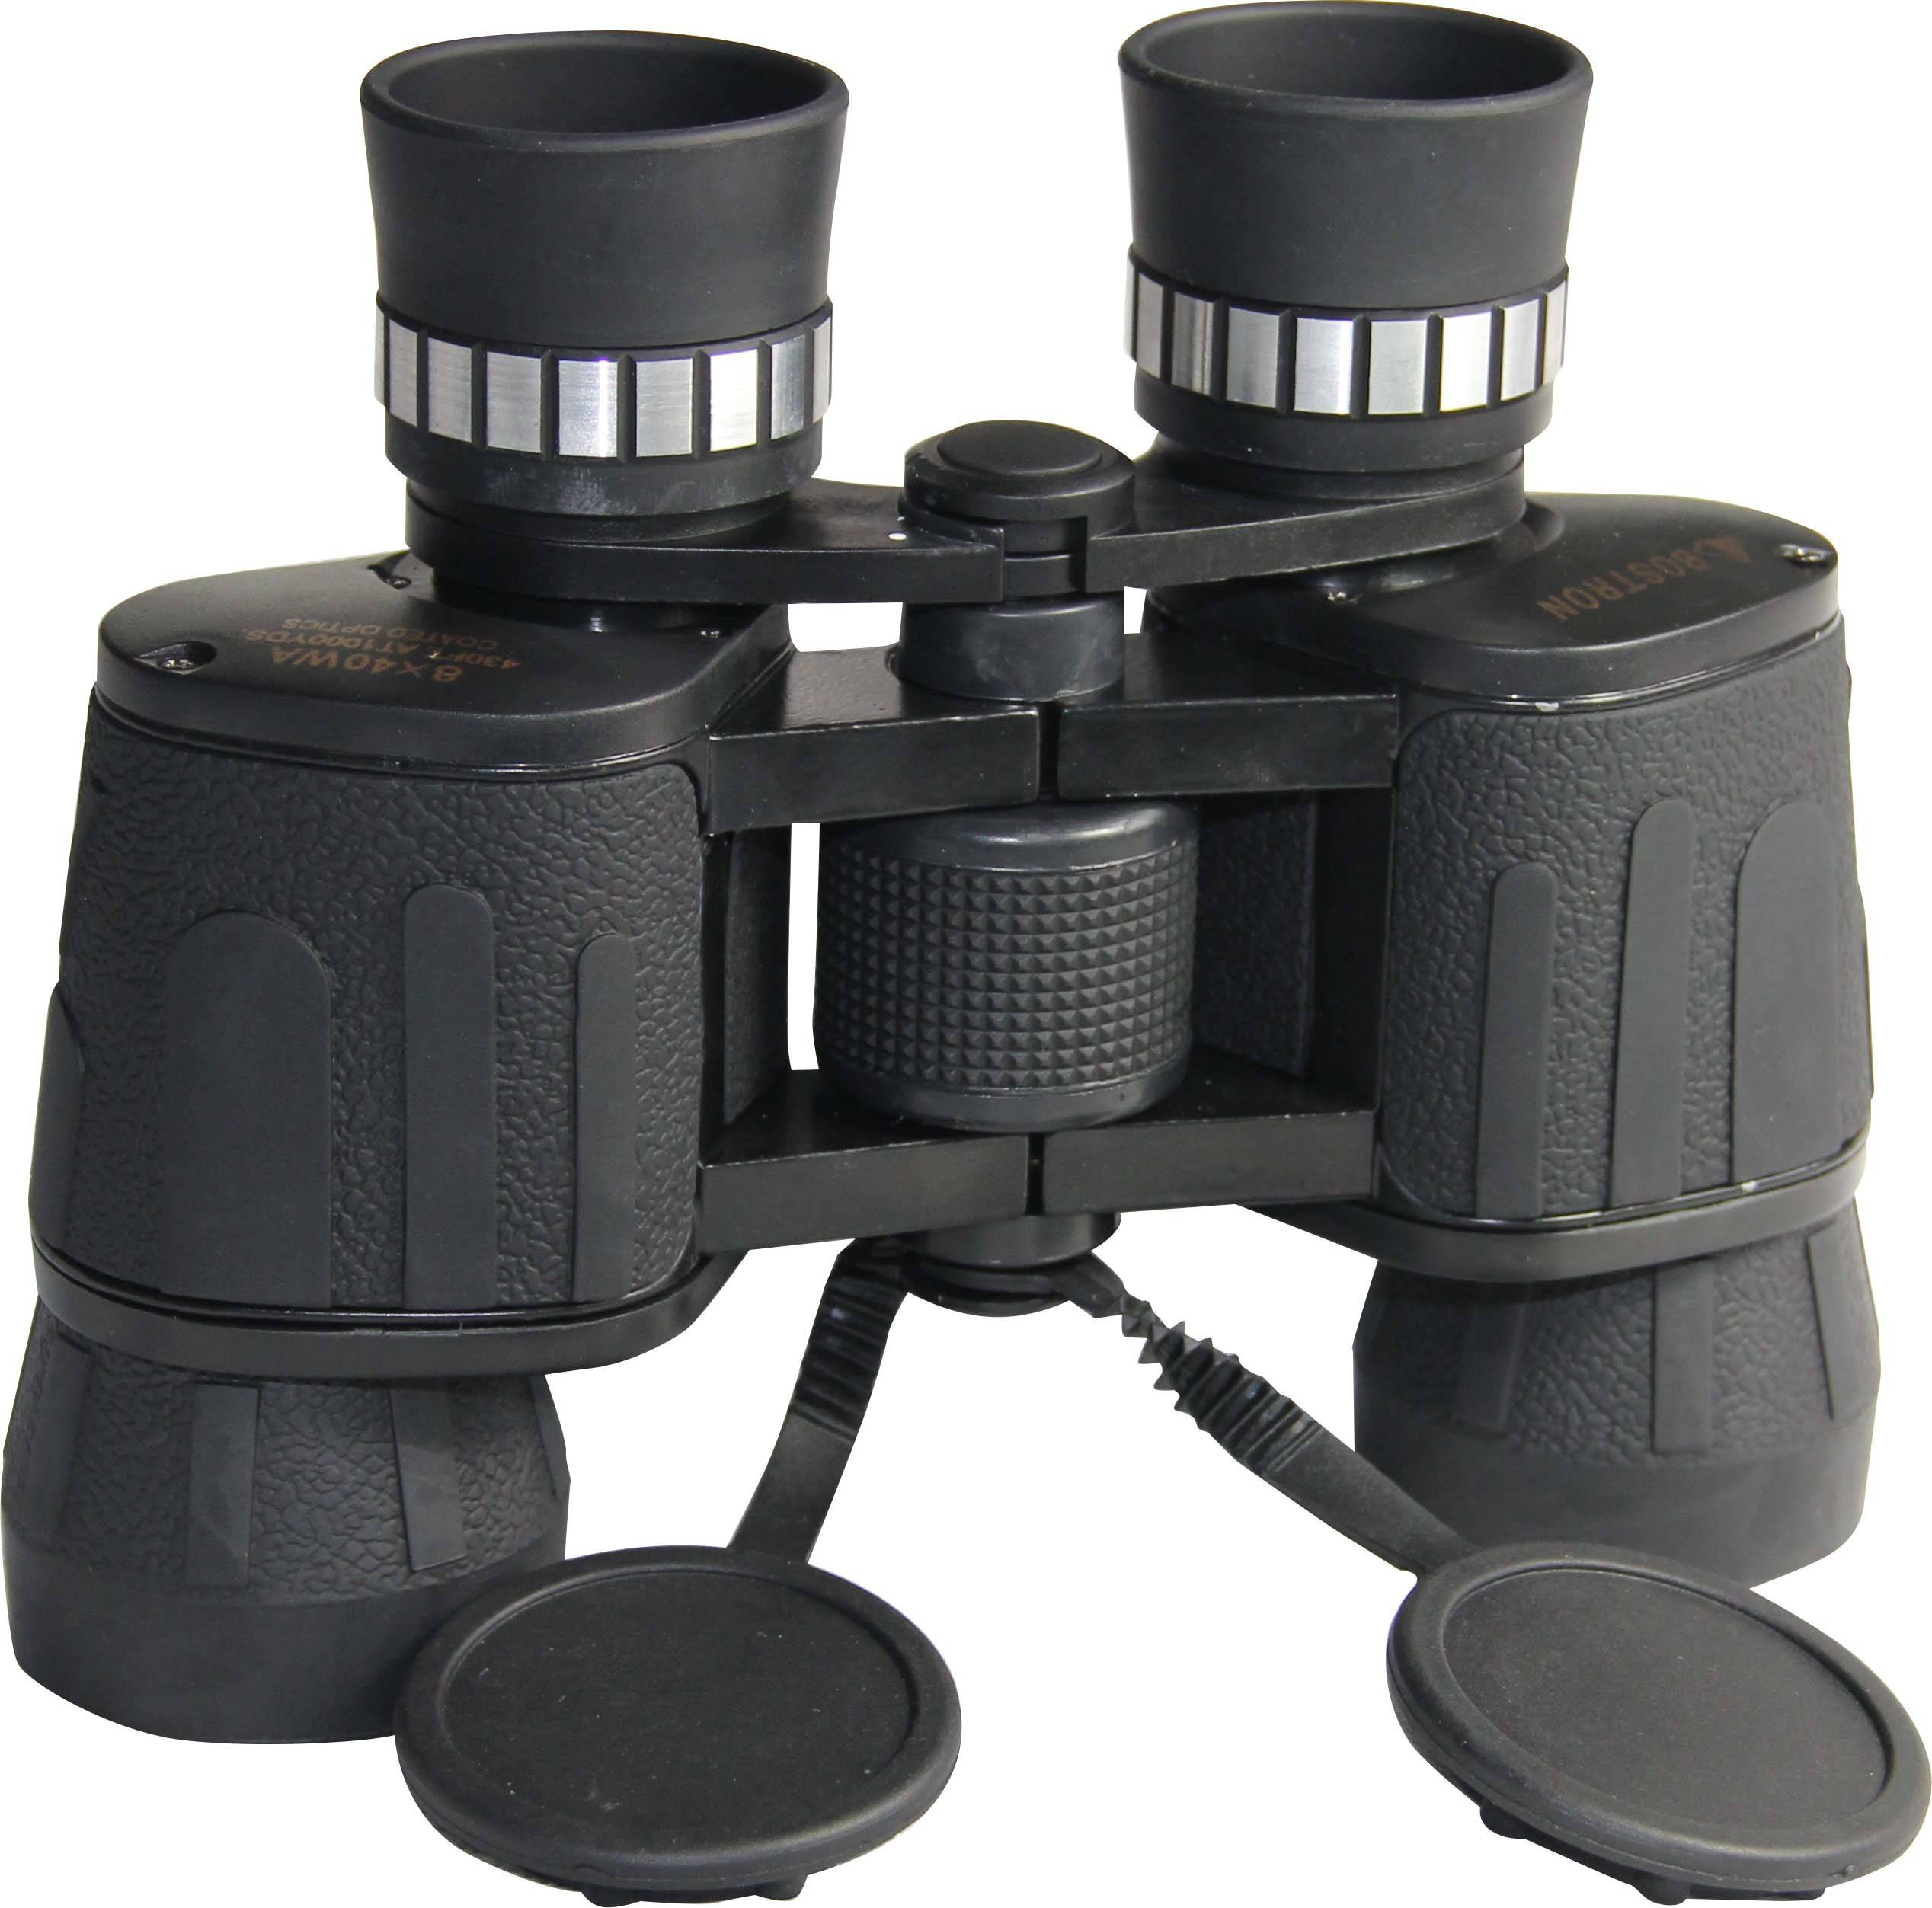 (BM-5001)Long Eye Relief Focus wide angle hunter 8X40 super clear 132m/1000m Binoculars